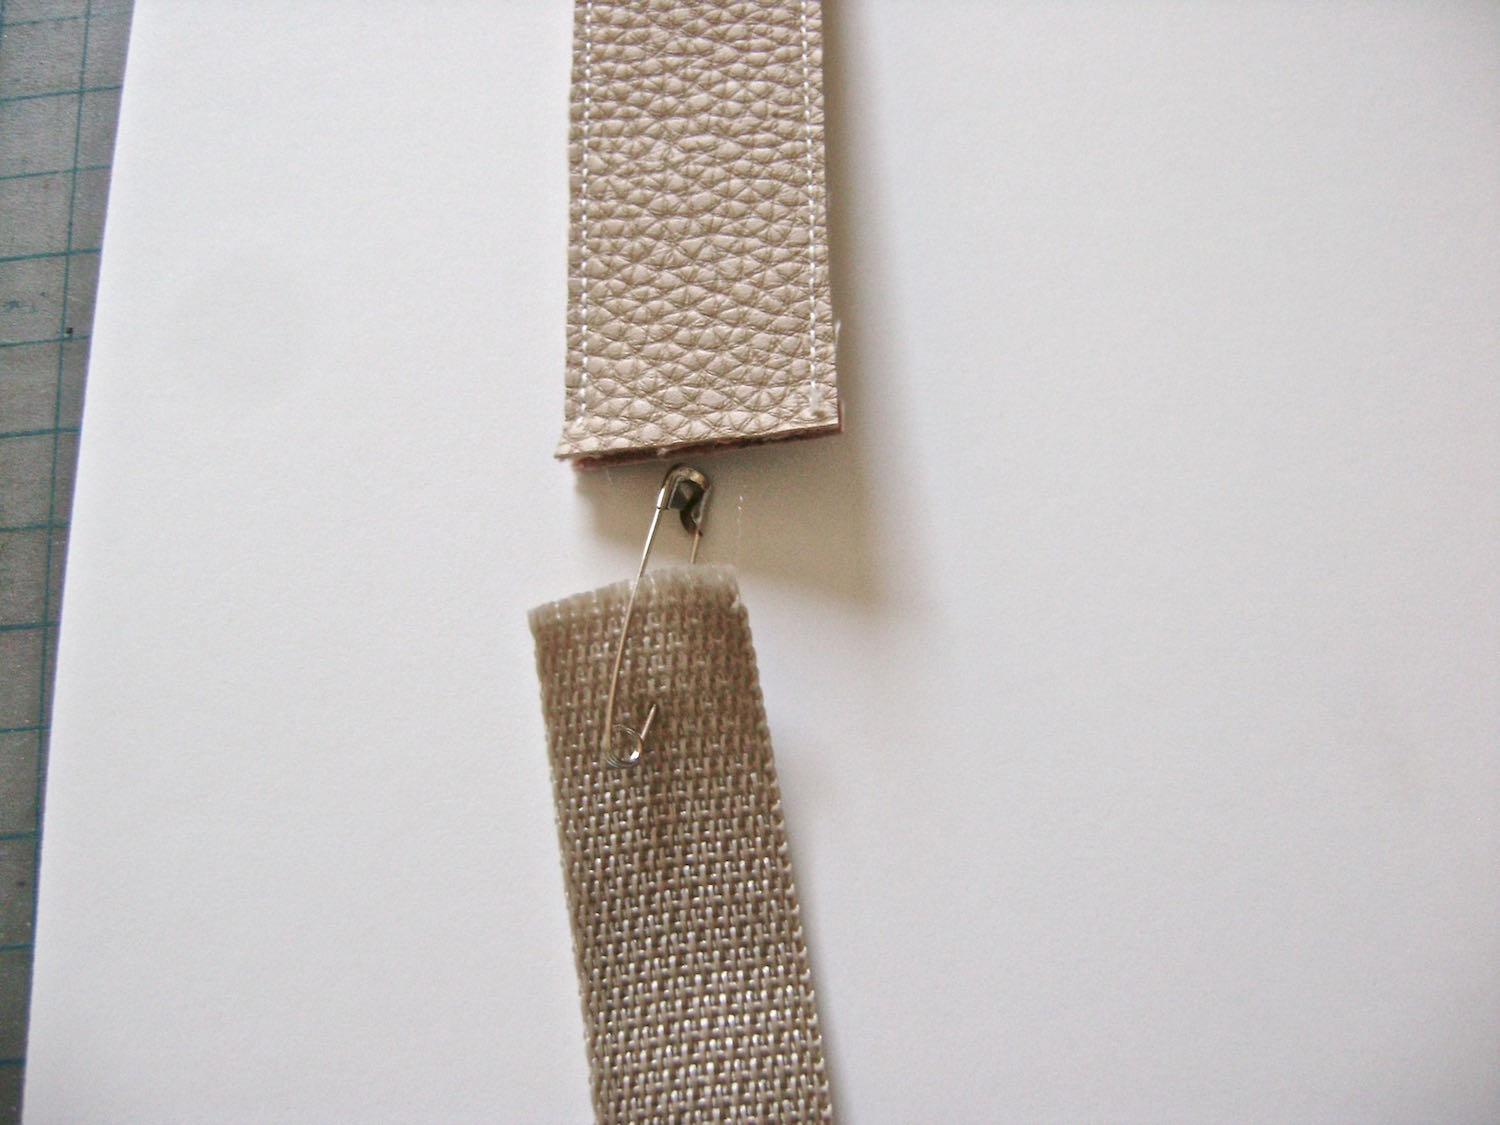 """step 20 - Place a safety pin on one end of the strap cord and thread it through the strap. It should be 1.5"""" shorter than the vinyl strap on each end ( a total of 3"""" shorter than the total length of the strap)."""